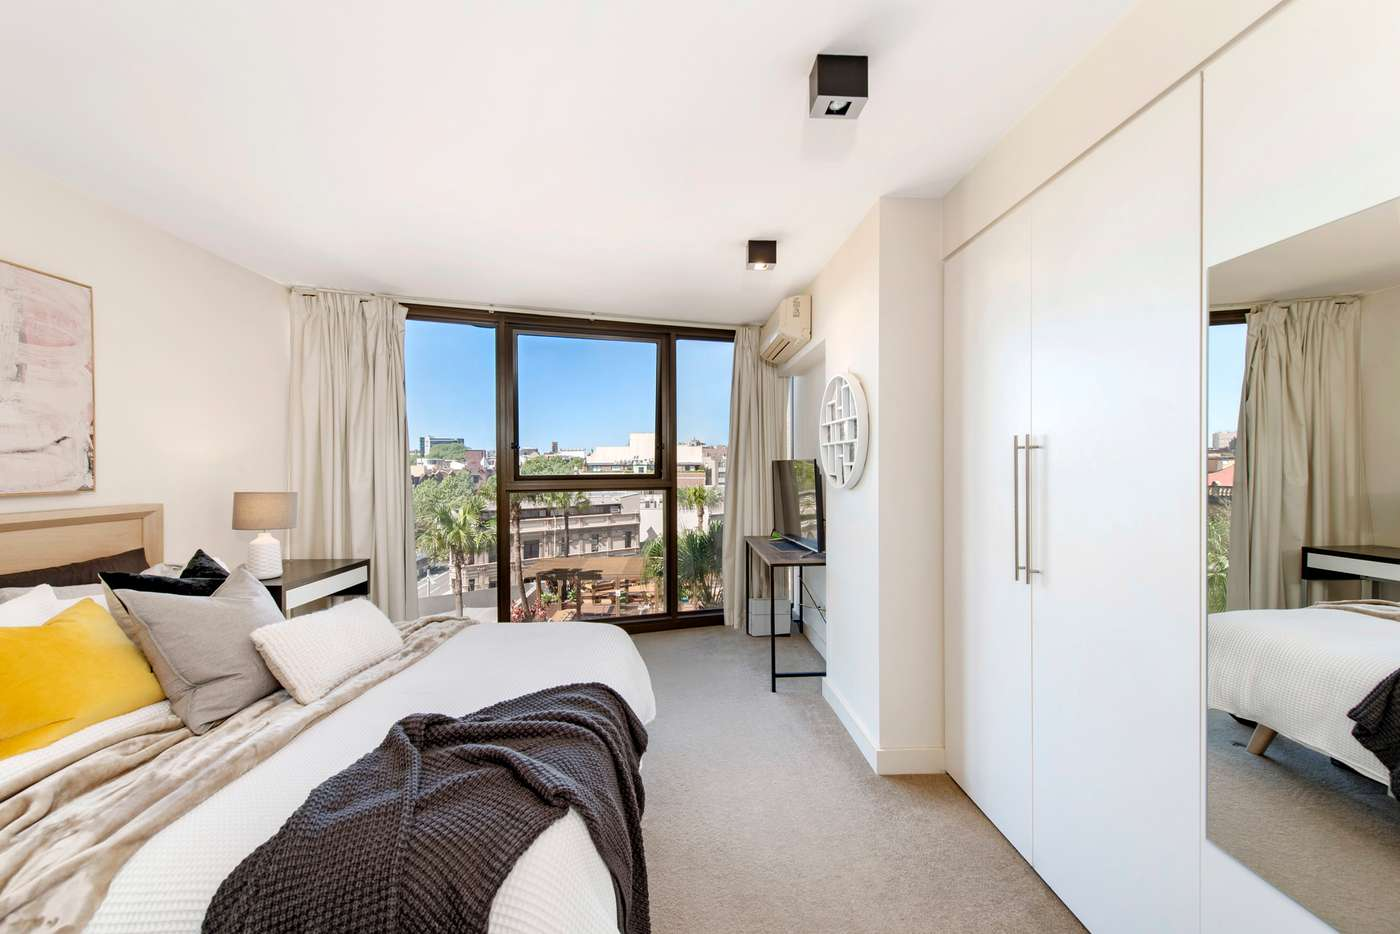 Fifth view of Homely apartment listing, 602/20 Pelican Street, Surry Hills NSW 2010